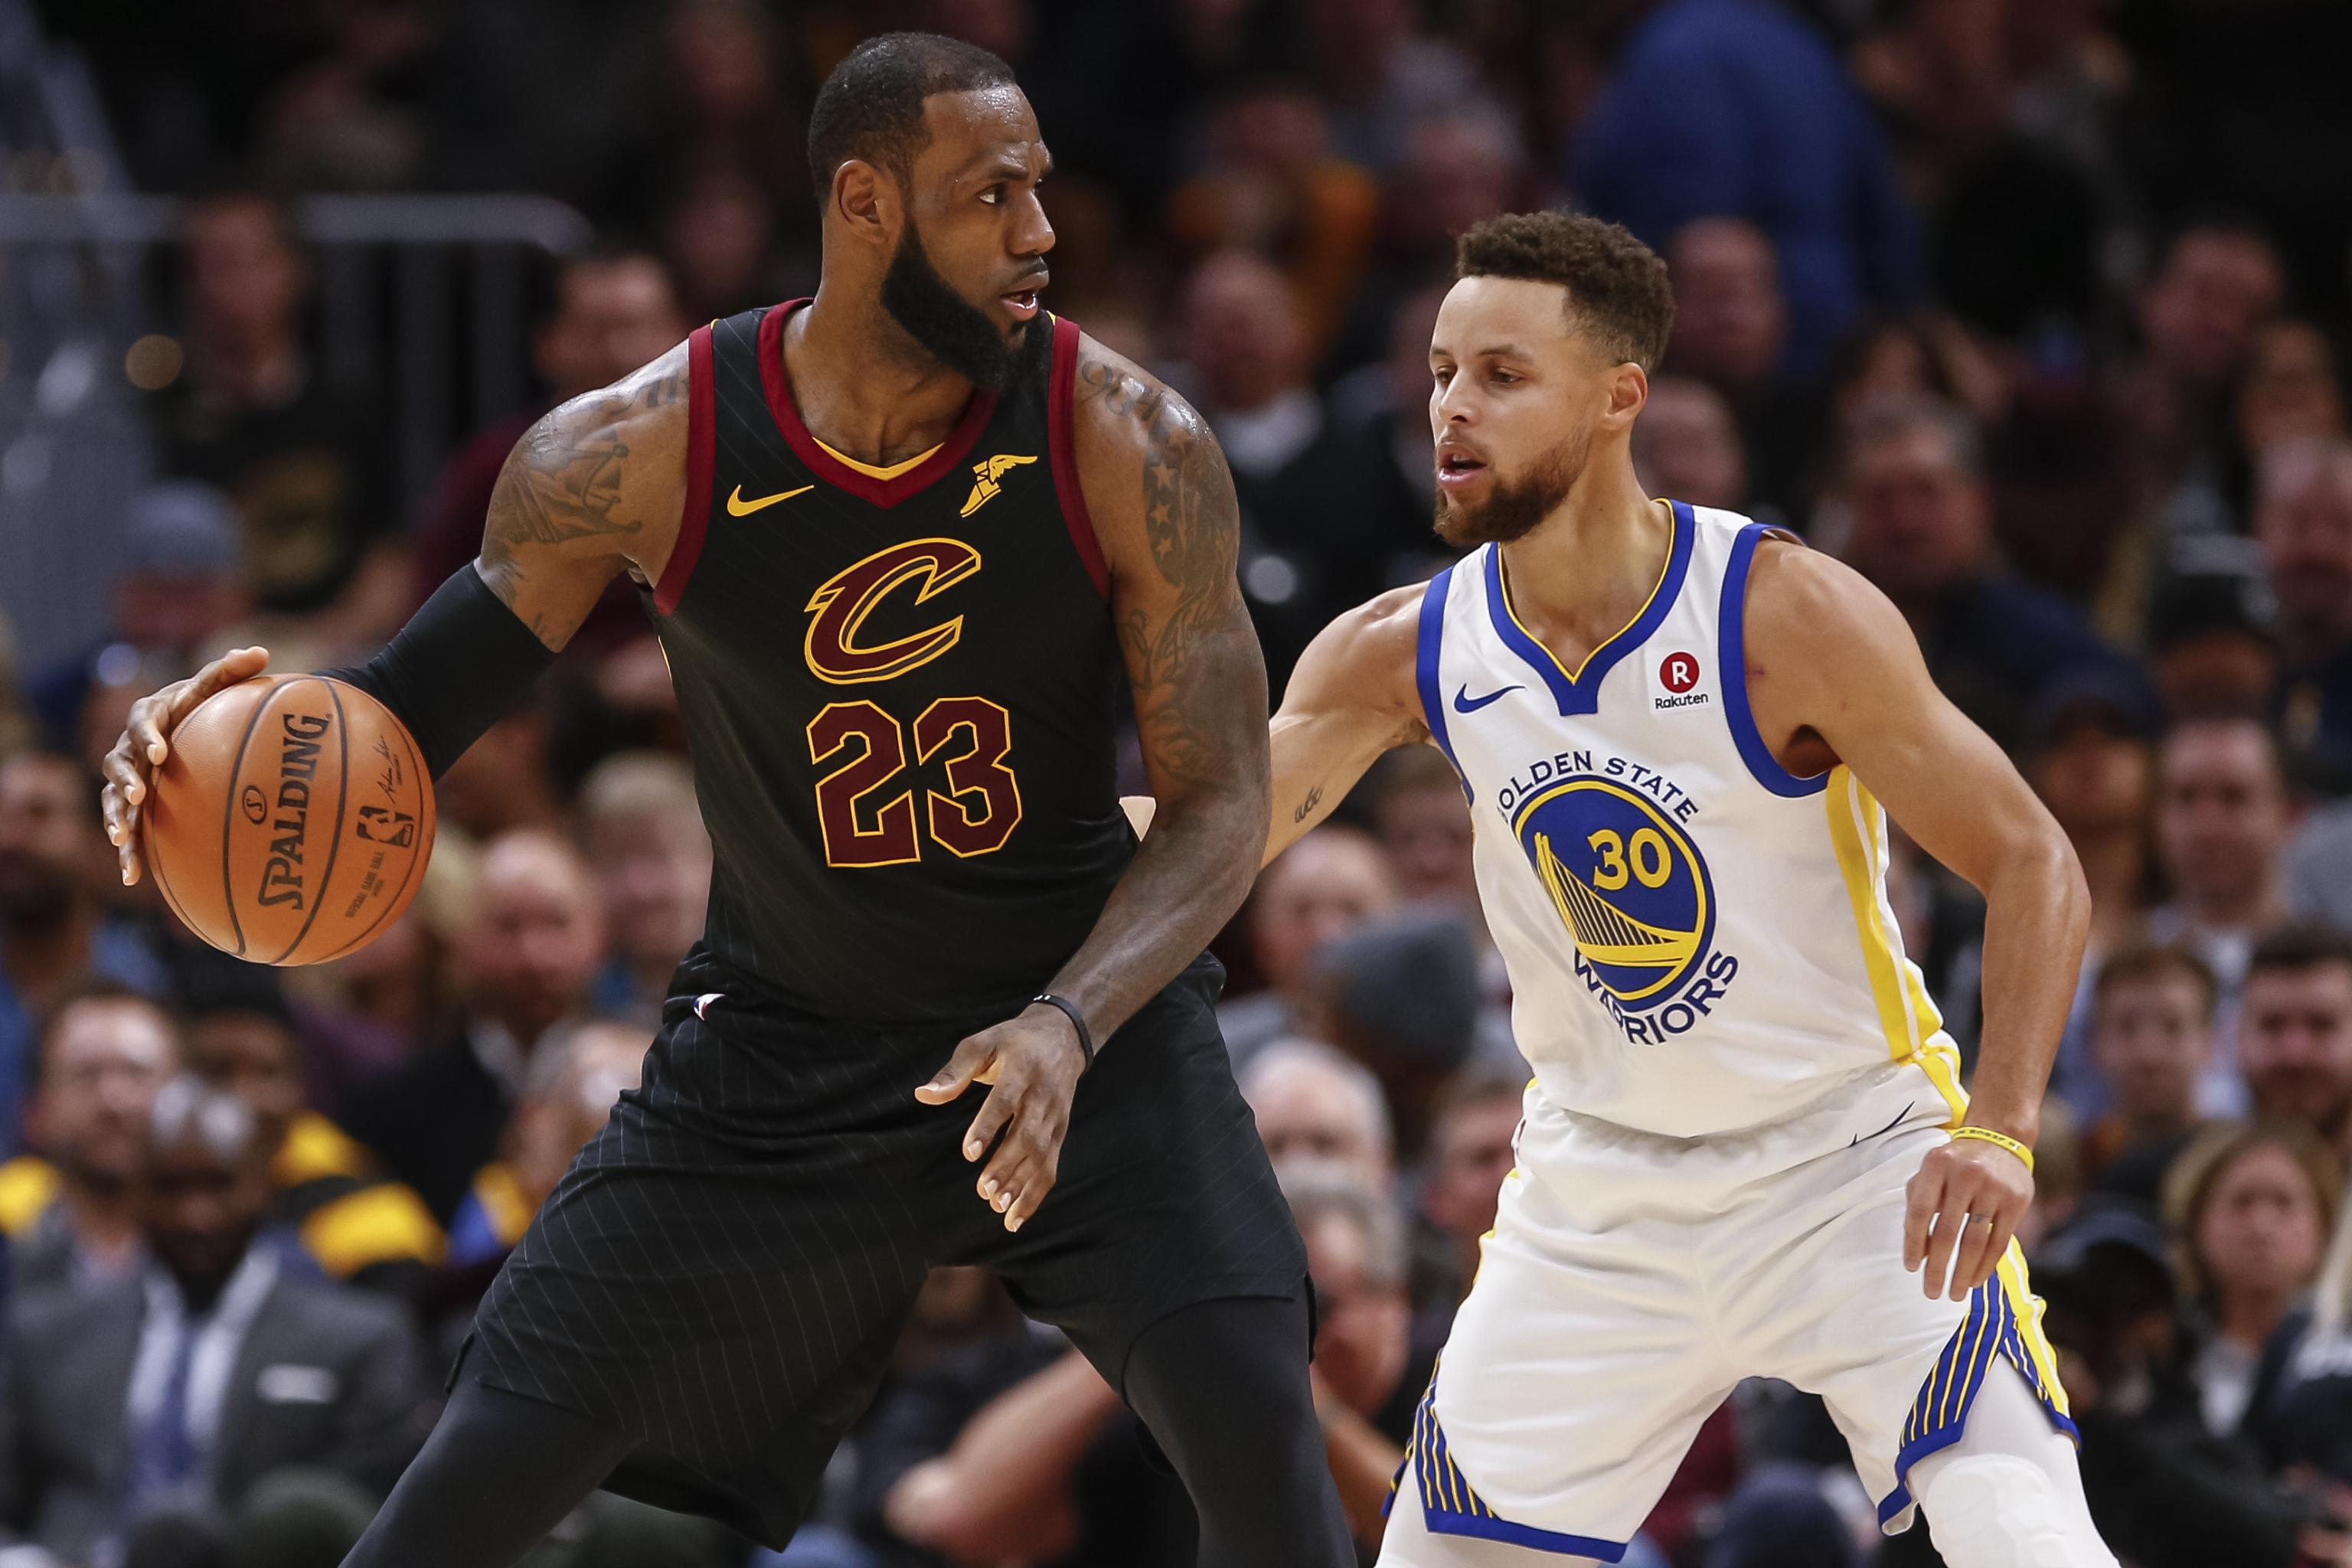 Nba All Star Game 2018 Rosters Lebron Vs Steph Starters Reserves Injury News Bleacher Report Latest News Videos And Highlights